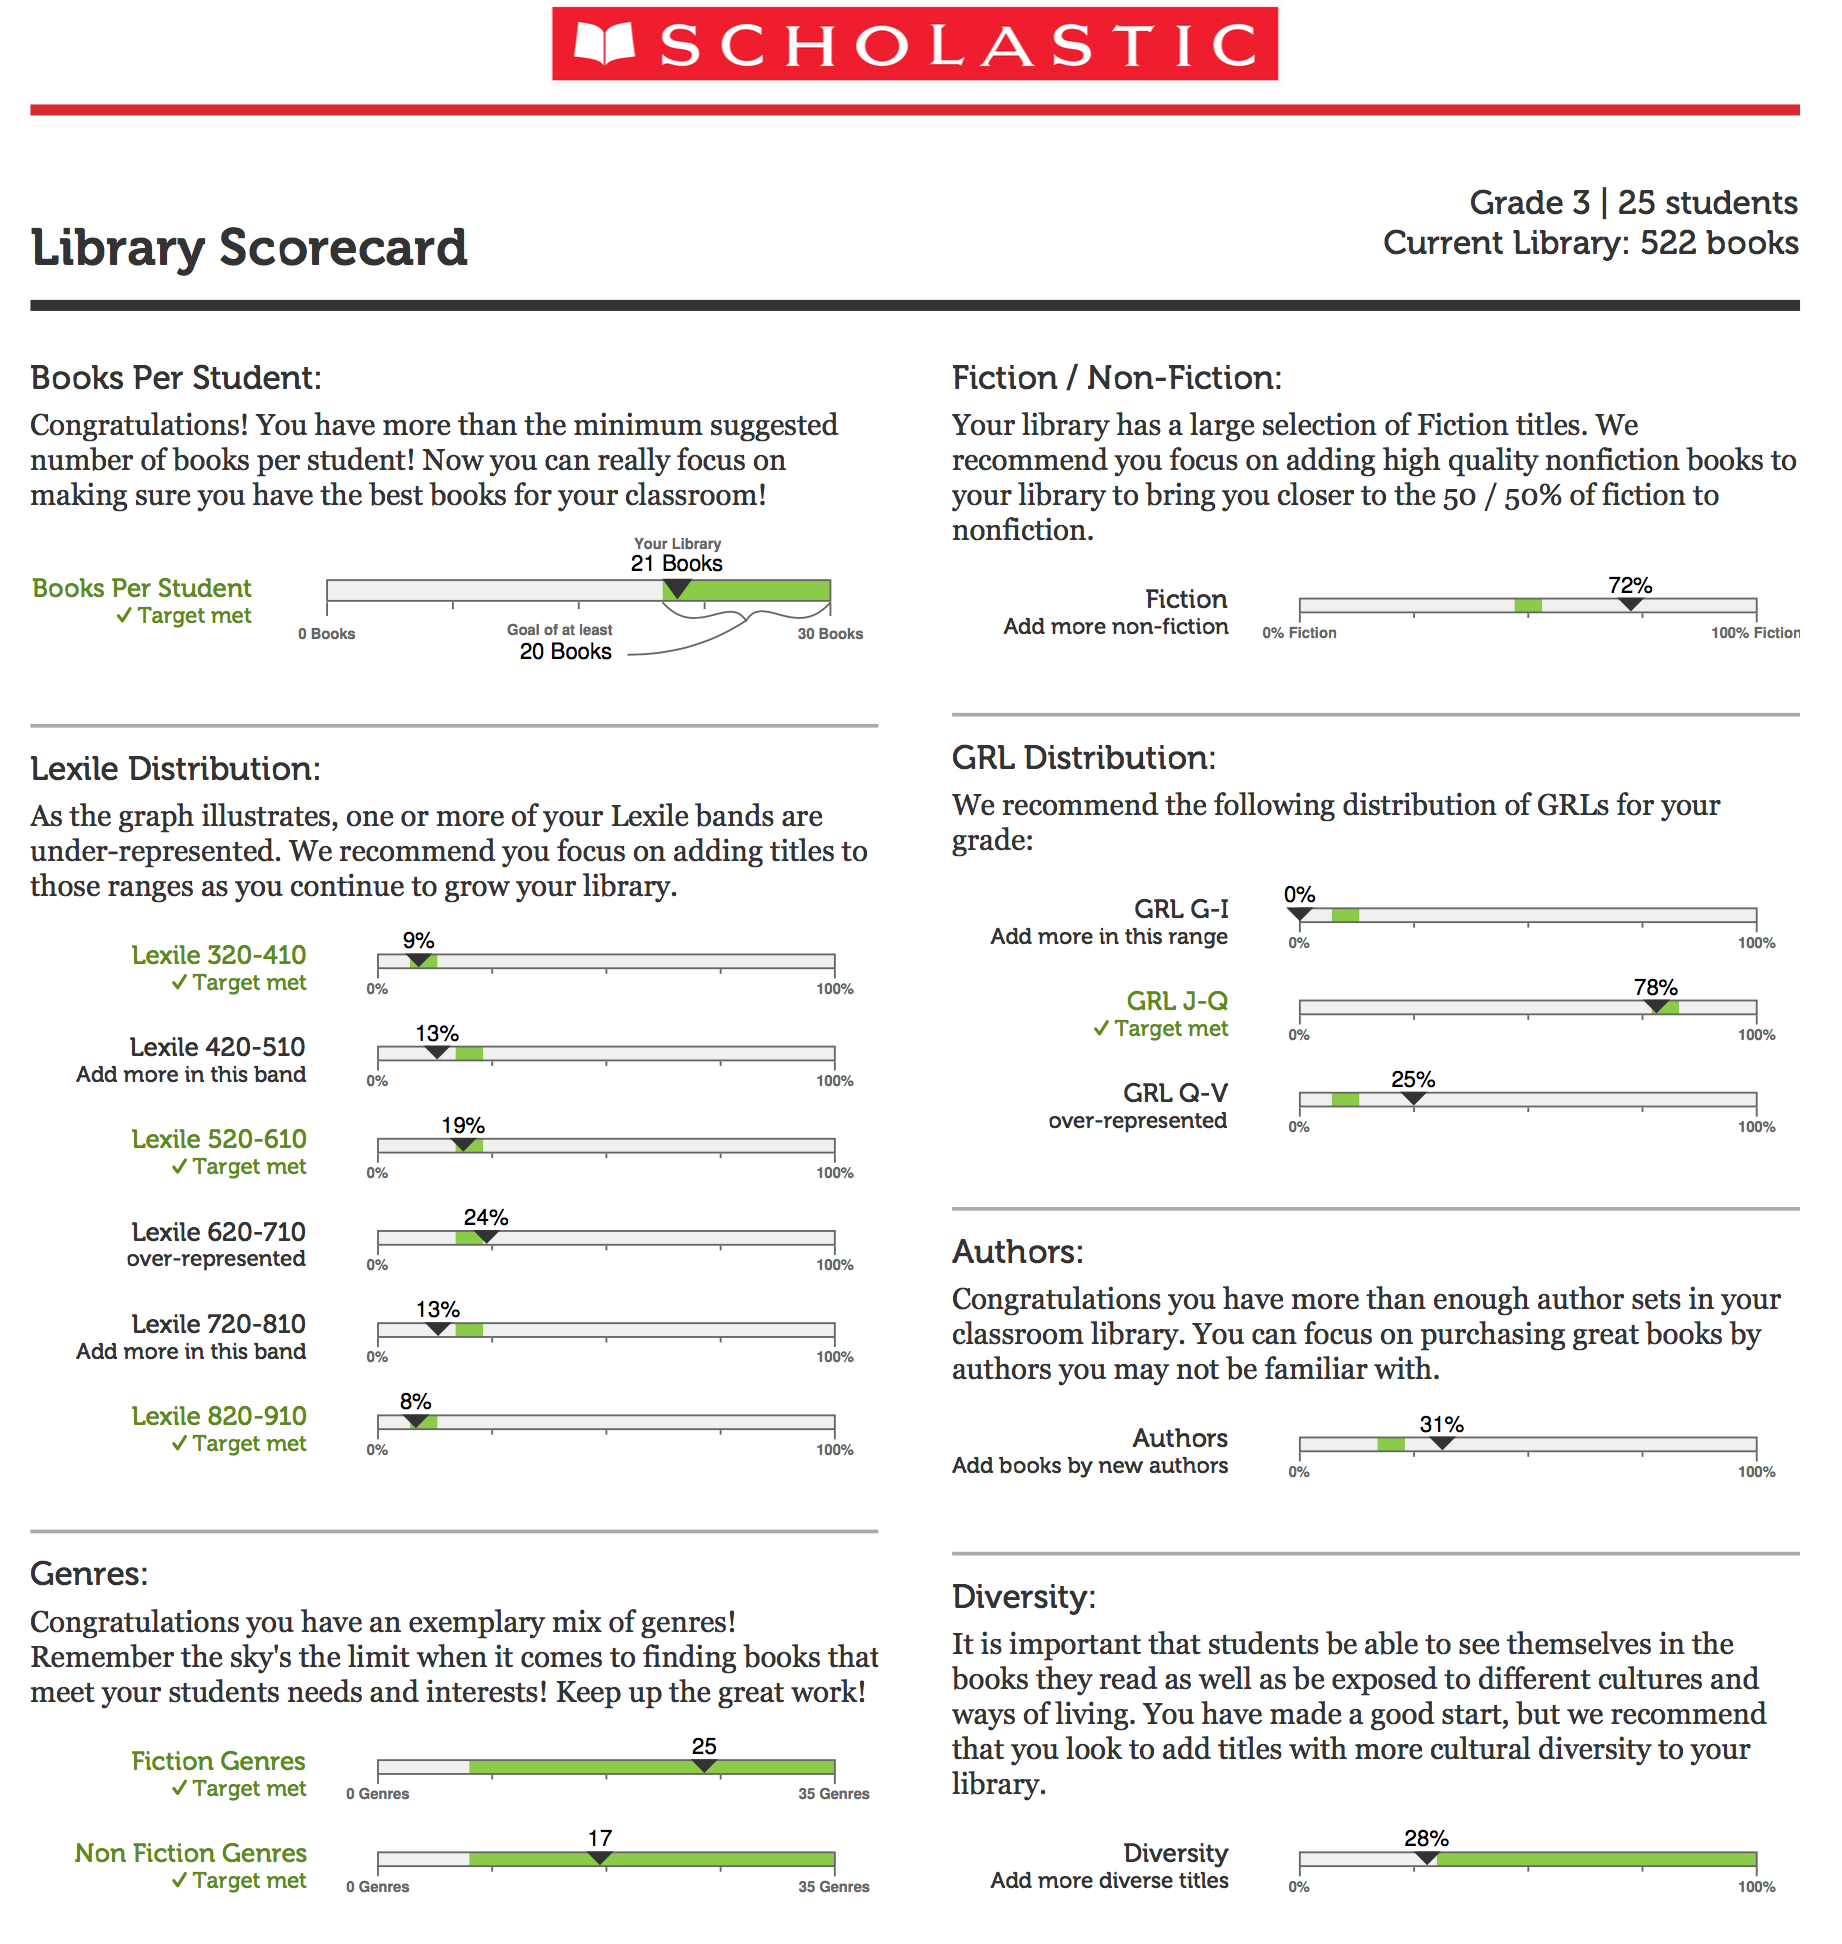 Scholastic Recommendation Benchmarks